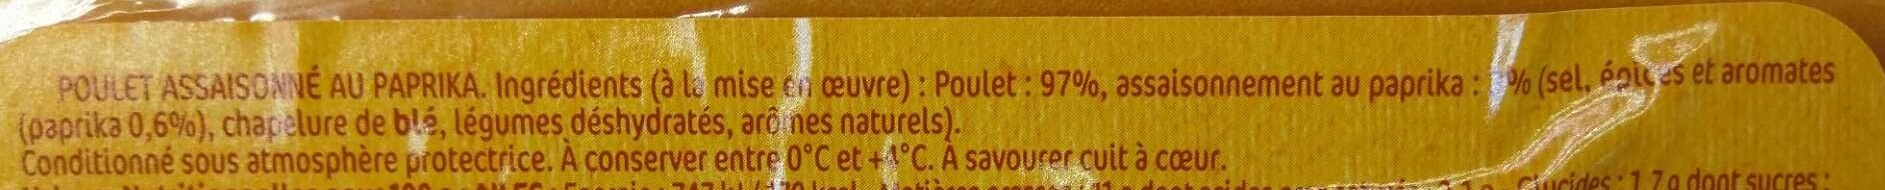 Poulet au Paprika - Ingredients